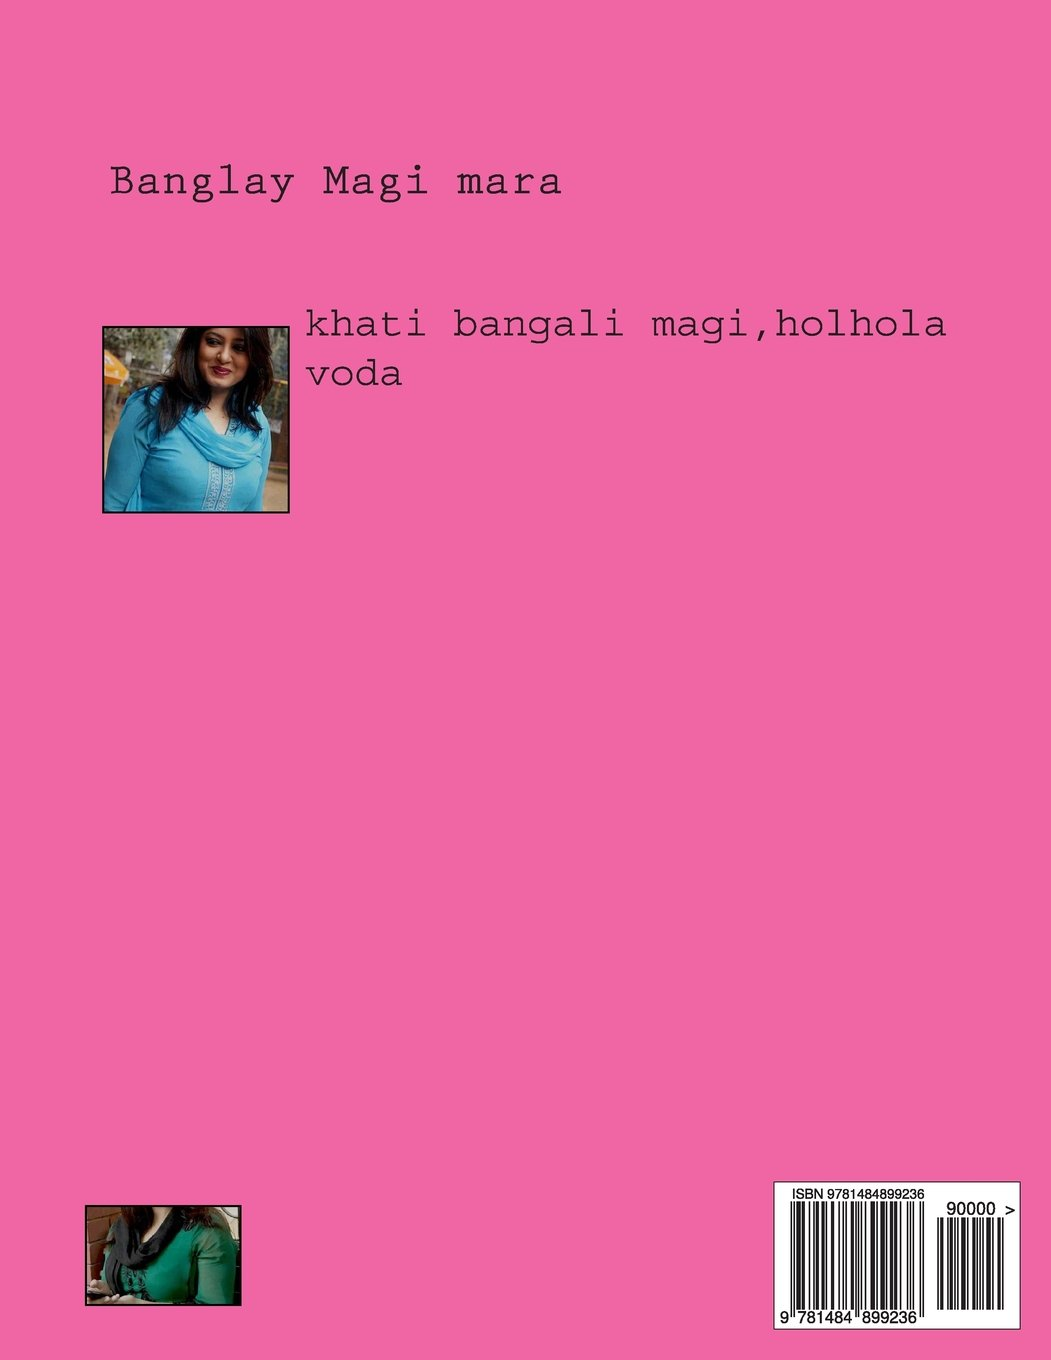 Bangla Choti Boi: Bangla Adiroshattok Golpo: Amazon co uk: Ms Gadon